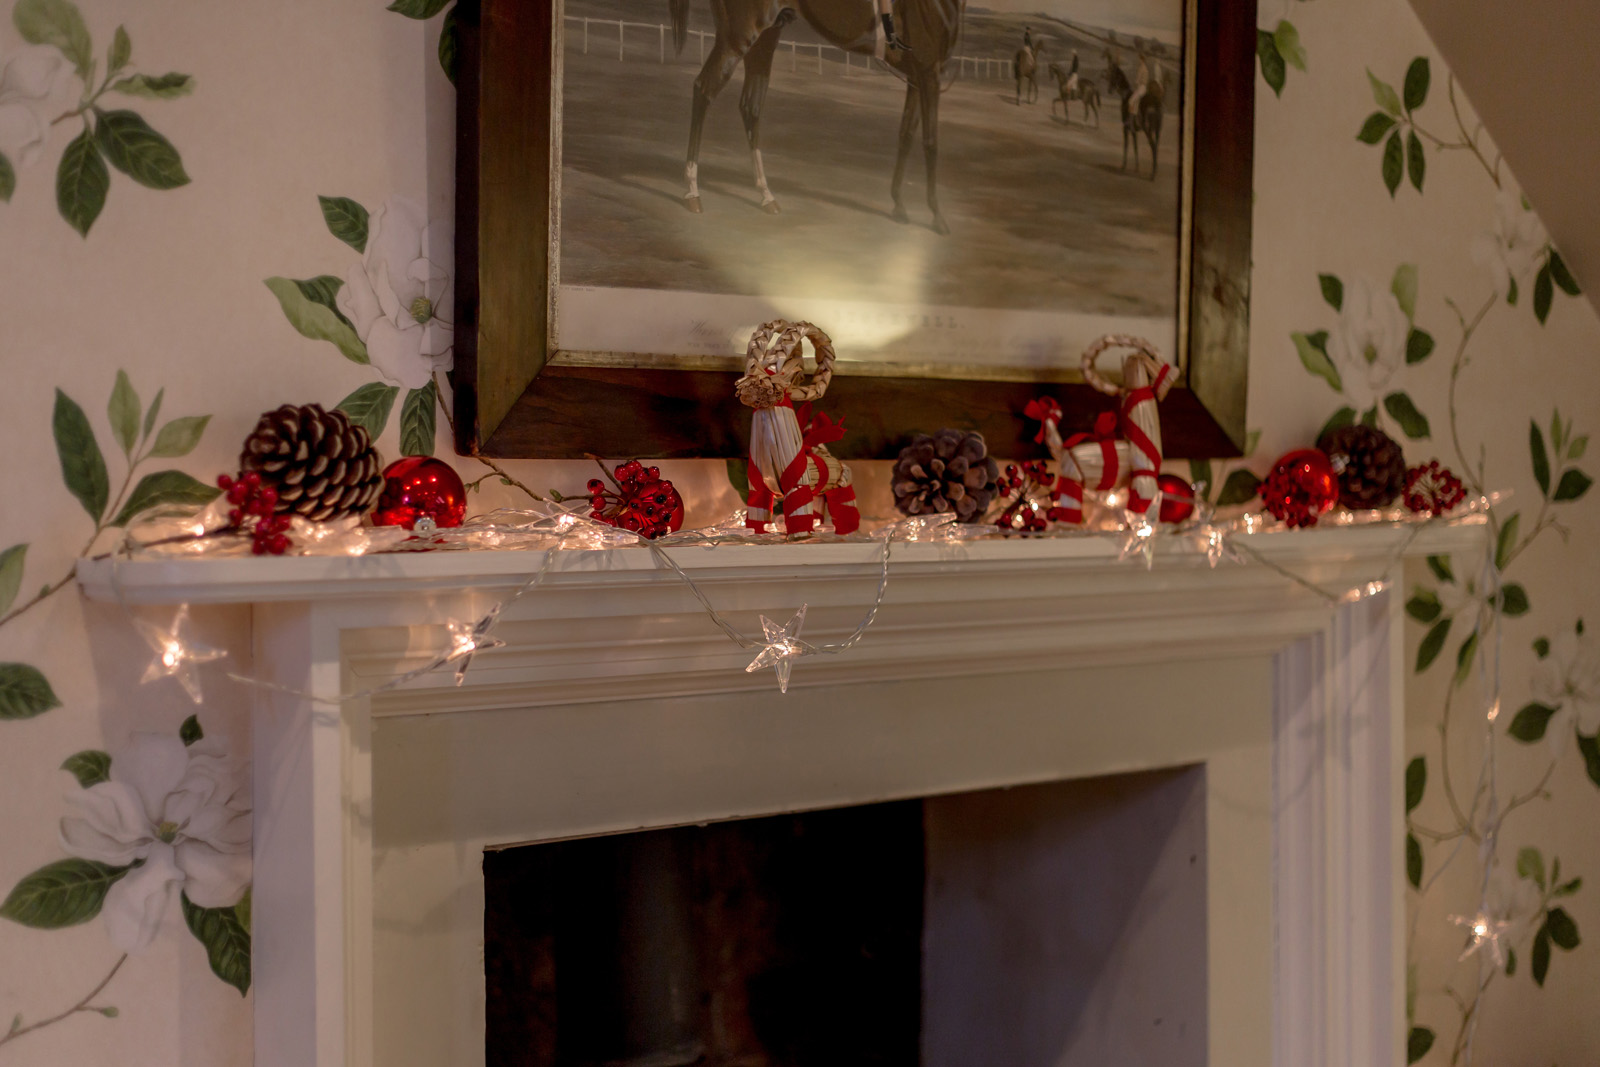 Festive decorations on the mantelpiece